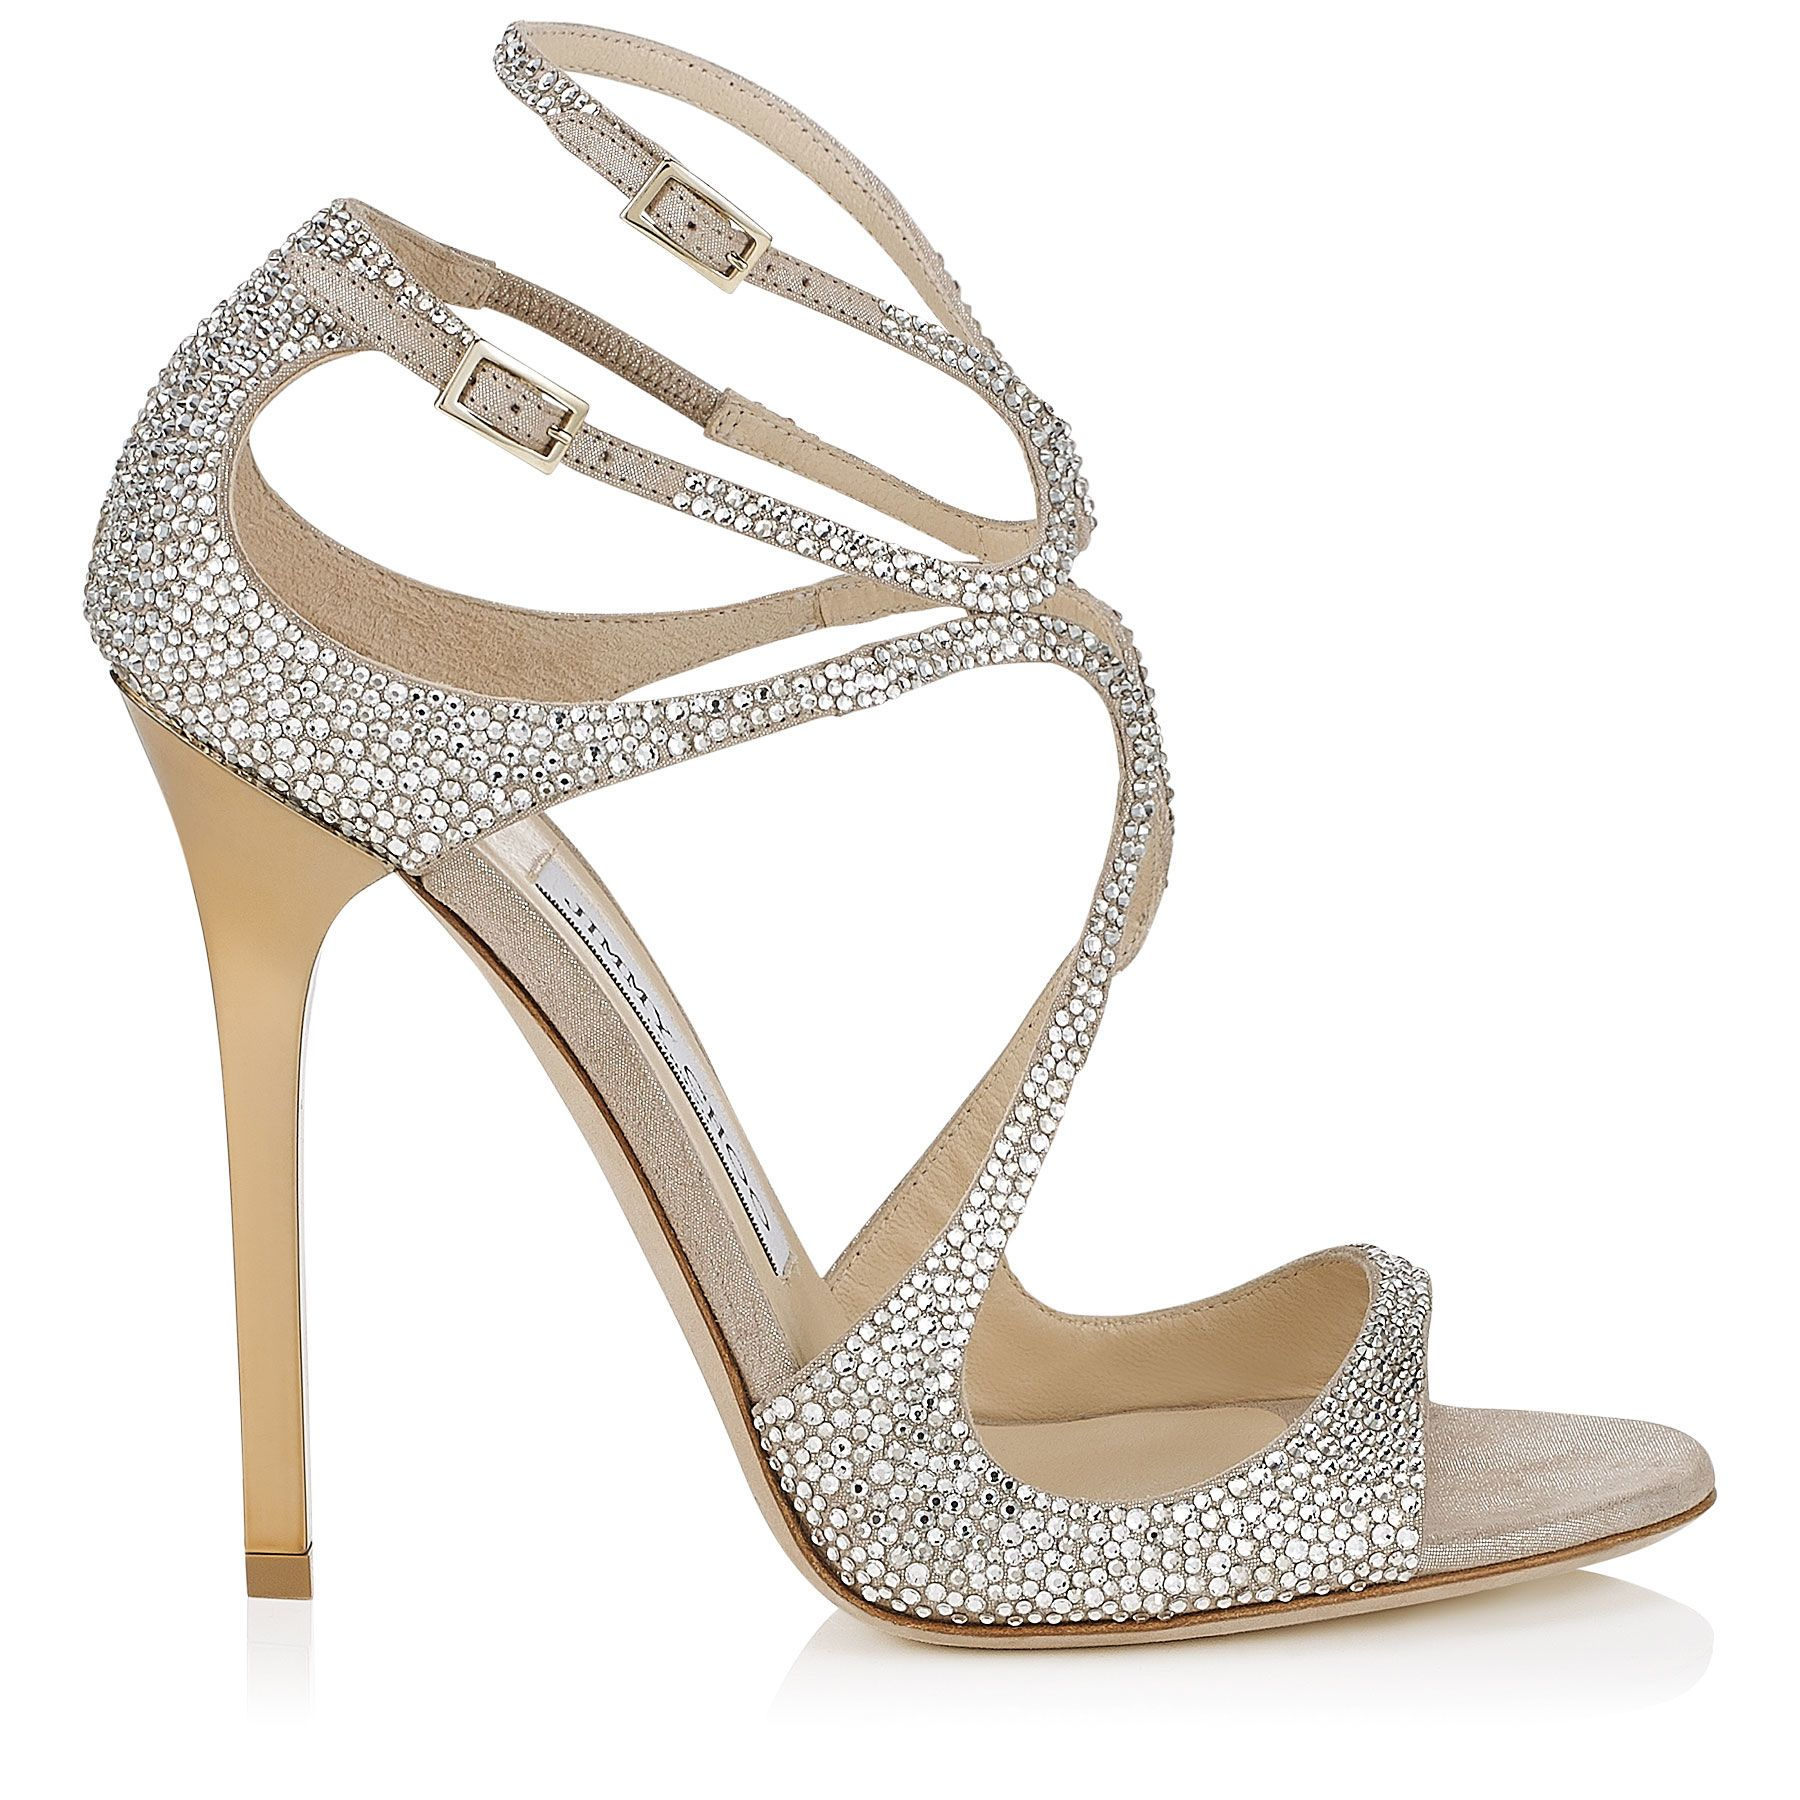 Lance Strappy Sandals in Nude Suede with Crystals Discover our